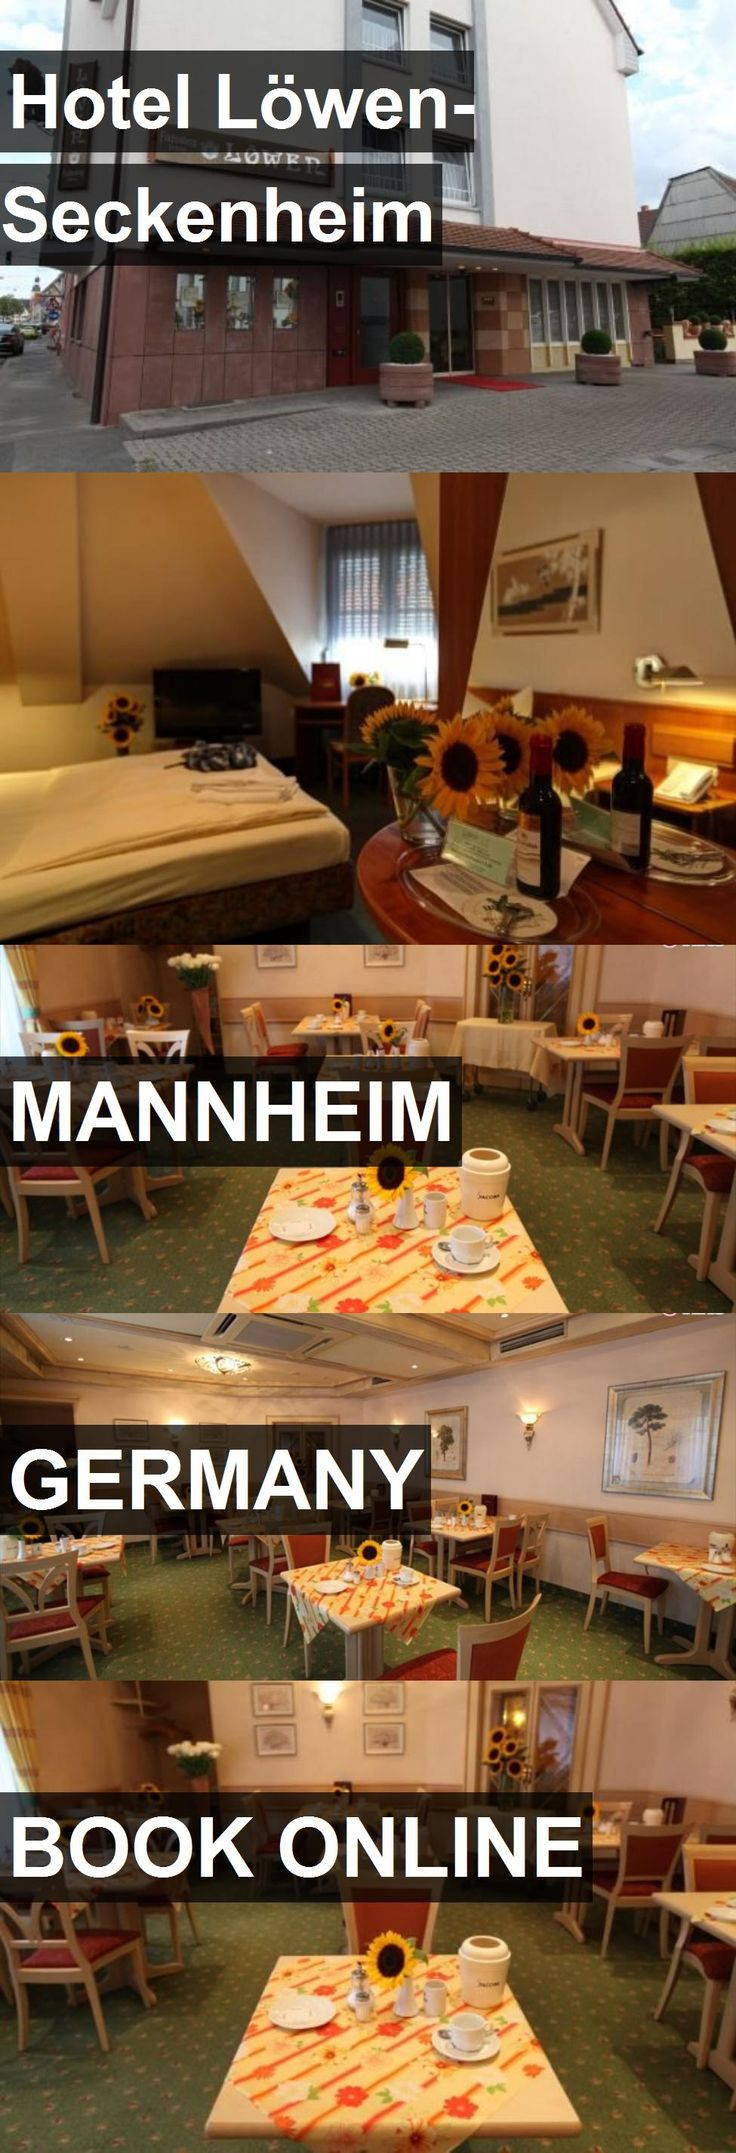 Hotel Löwen-Seckenheim in Mannheim, Germany. For more information, photos, reviews and best prices please follow the link. #Germany #Mannheim #travel #vacation #hotel